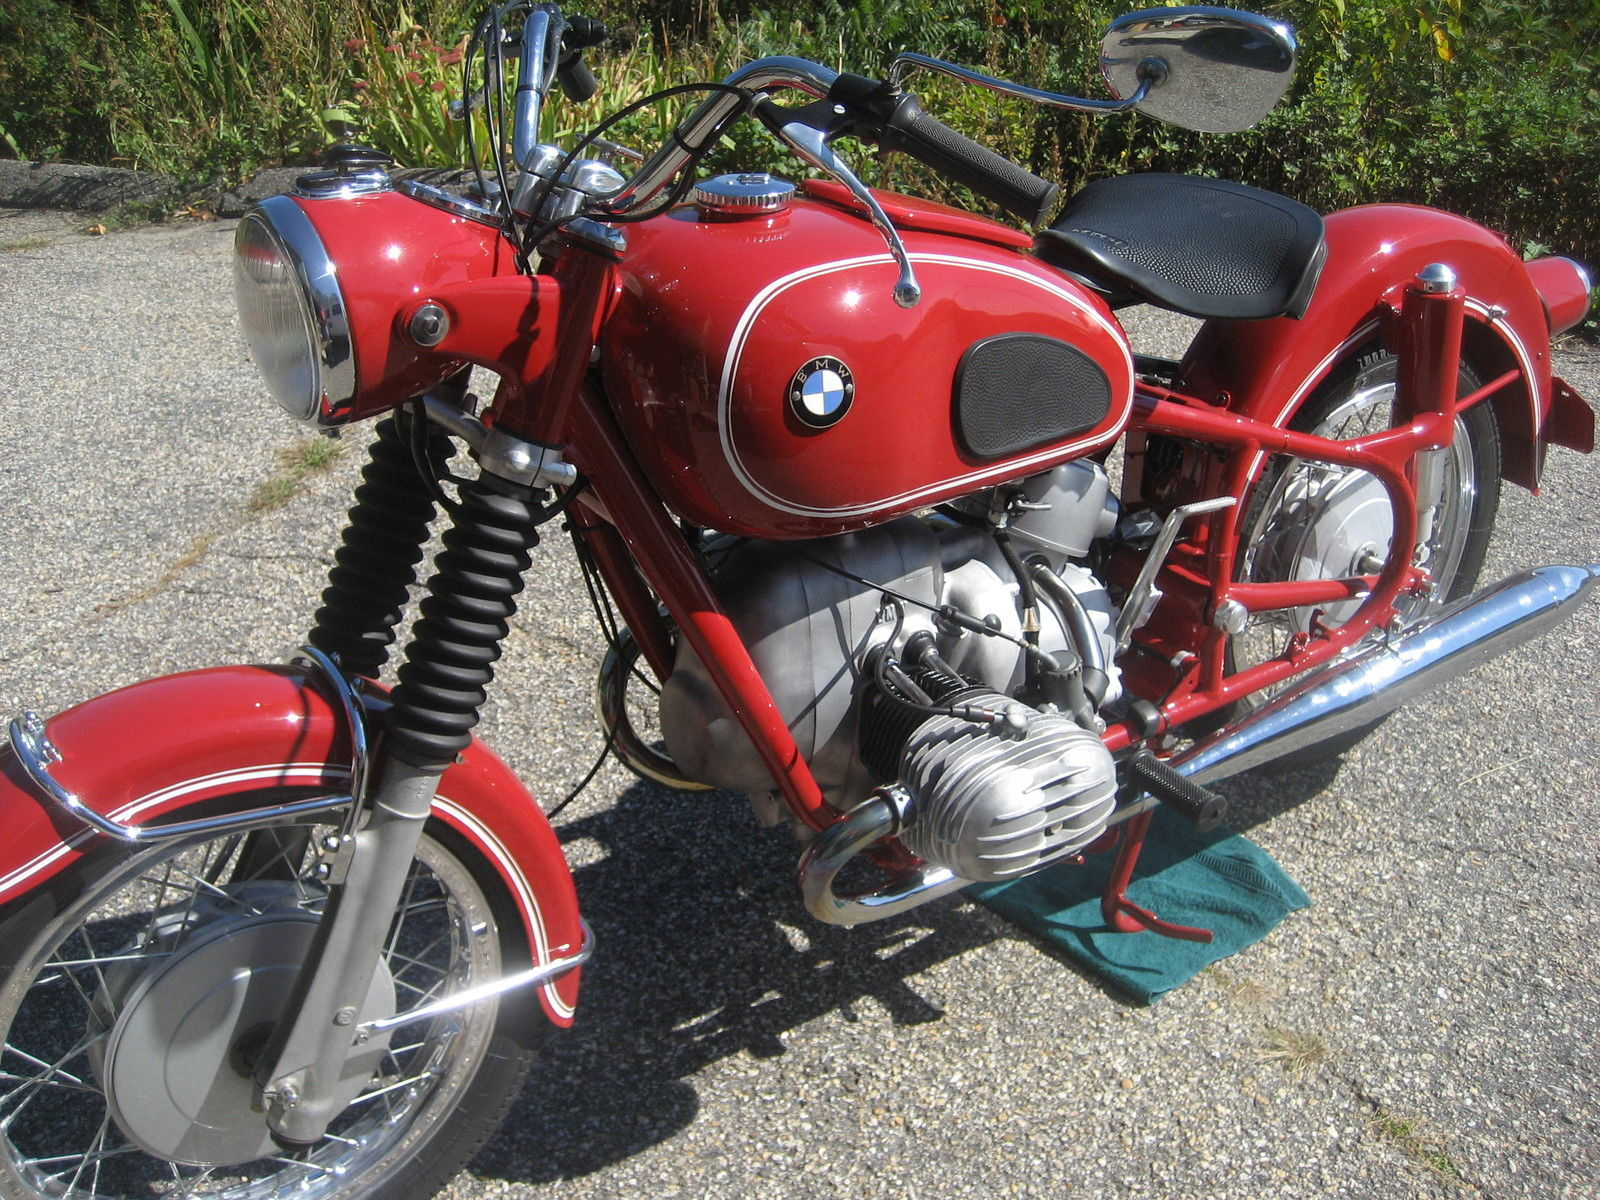 BMW R60 - 1969 - Left Side View, Engine, Tank and Frame.